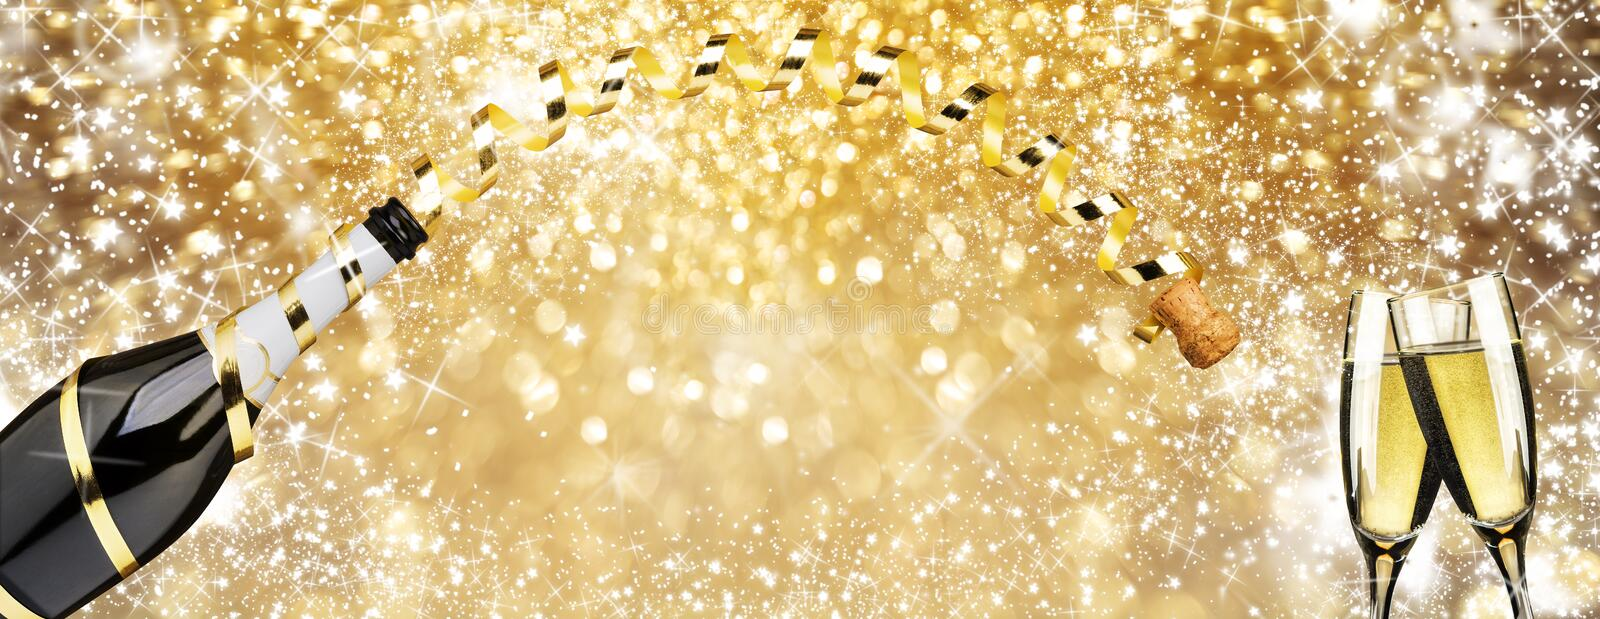 New year` eve toast champagne flutes , golden ribbon and fireworks sparkle golden background royalty free stock photo